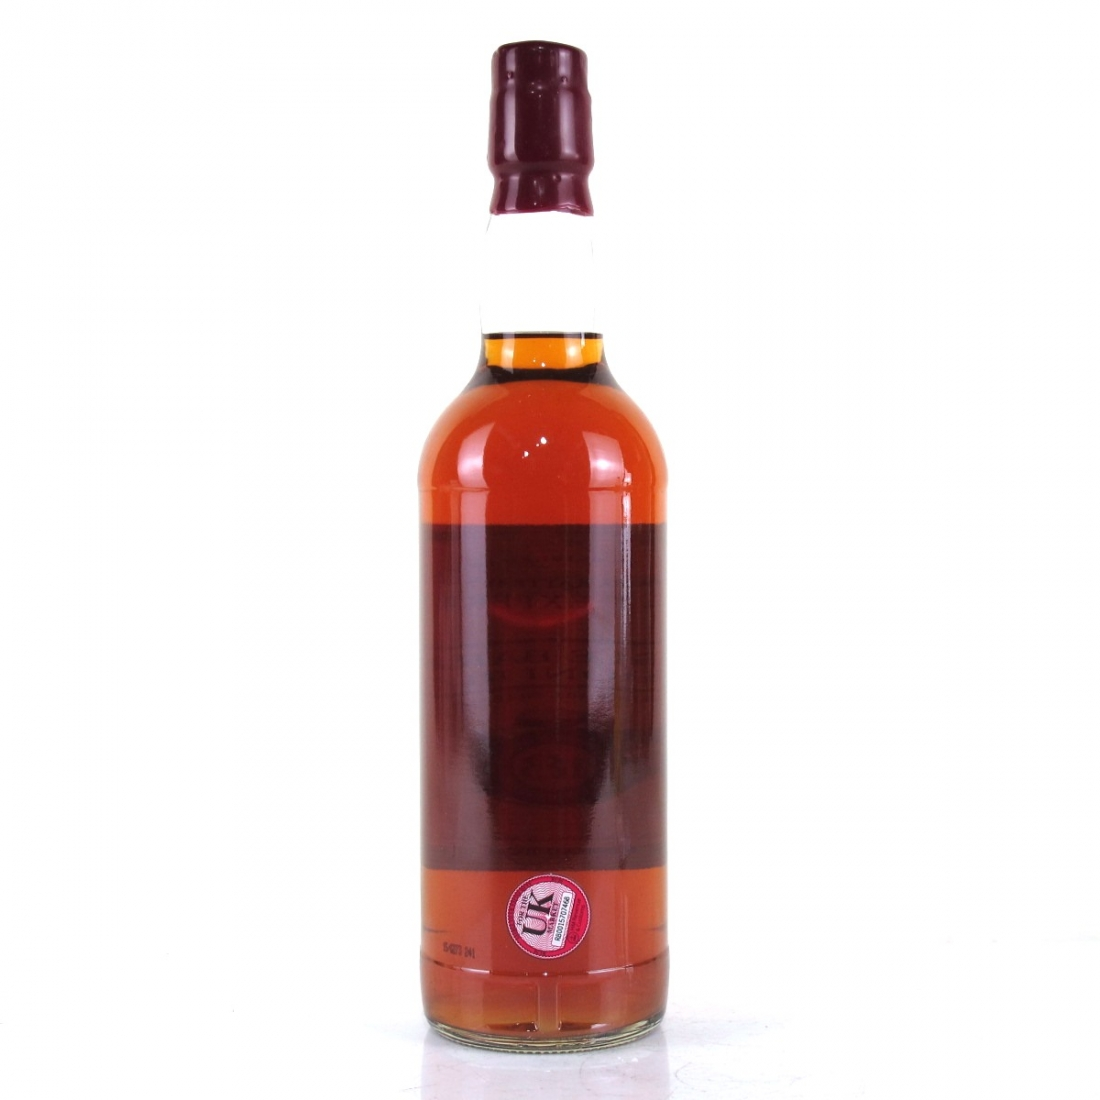 Caroni 18 Year Old A.D. Rattray Trinidad Rum